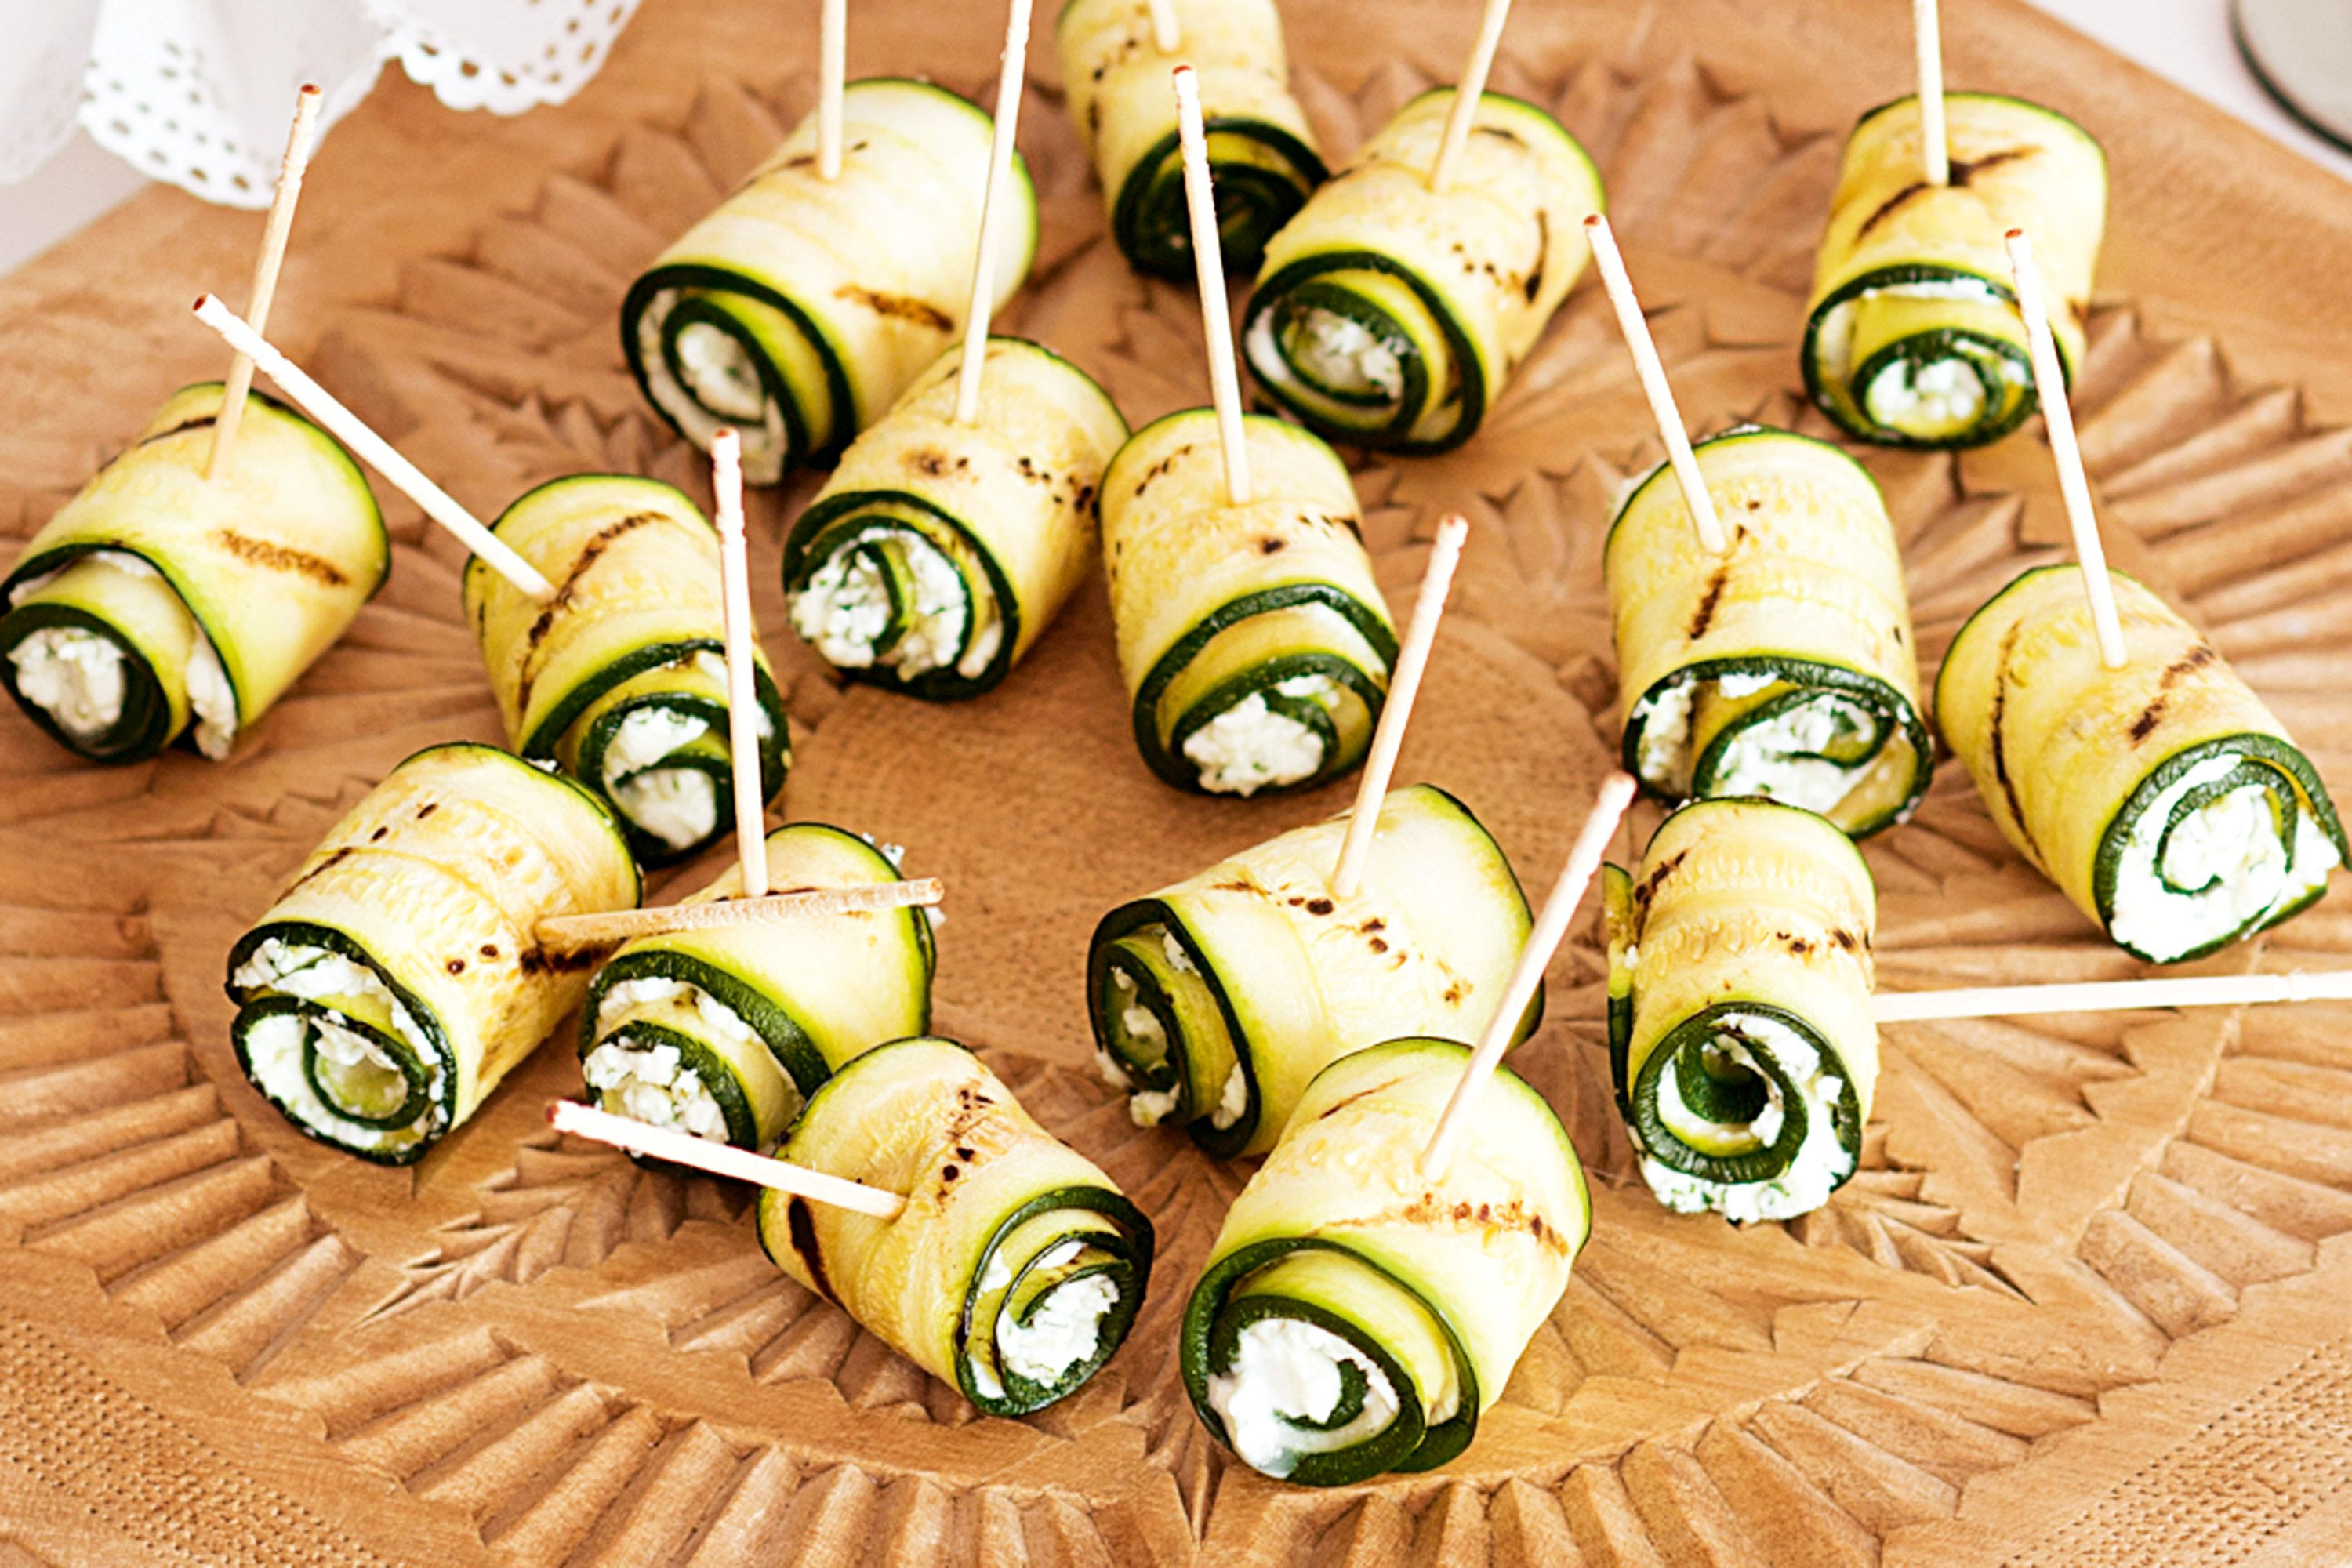 Grilled zucchini and goats cheese bites recipe cheese bites grilled zucchini and goats cheese bites recipe cheese bites grilled courgette and courgettes forumfinder Choice Image